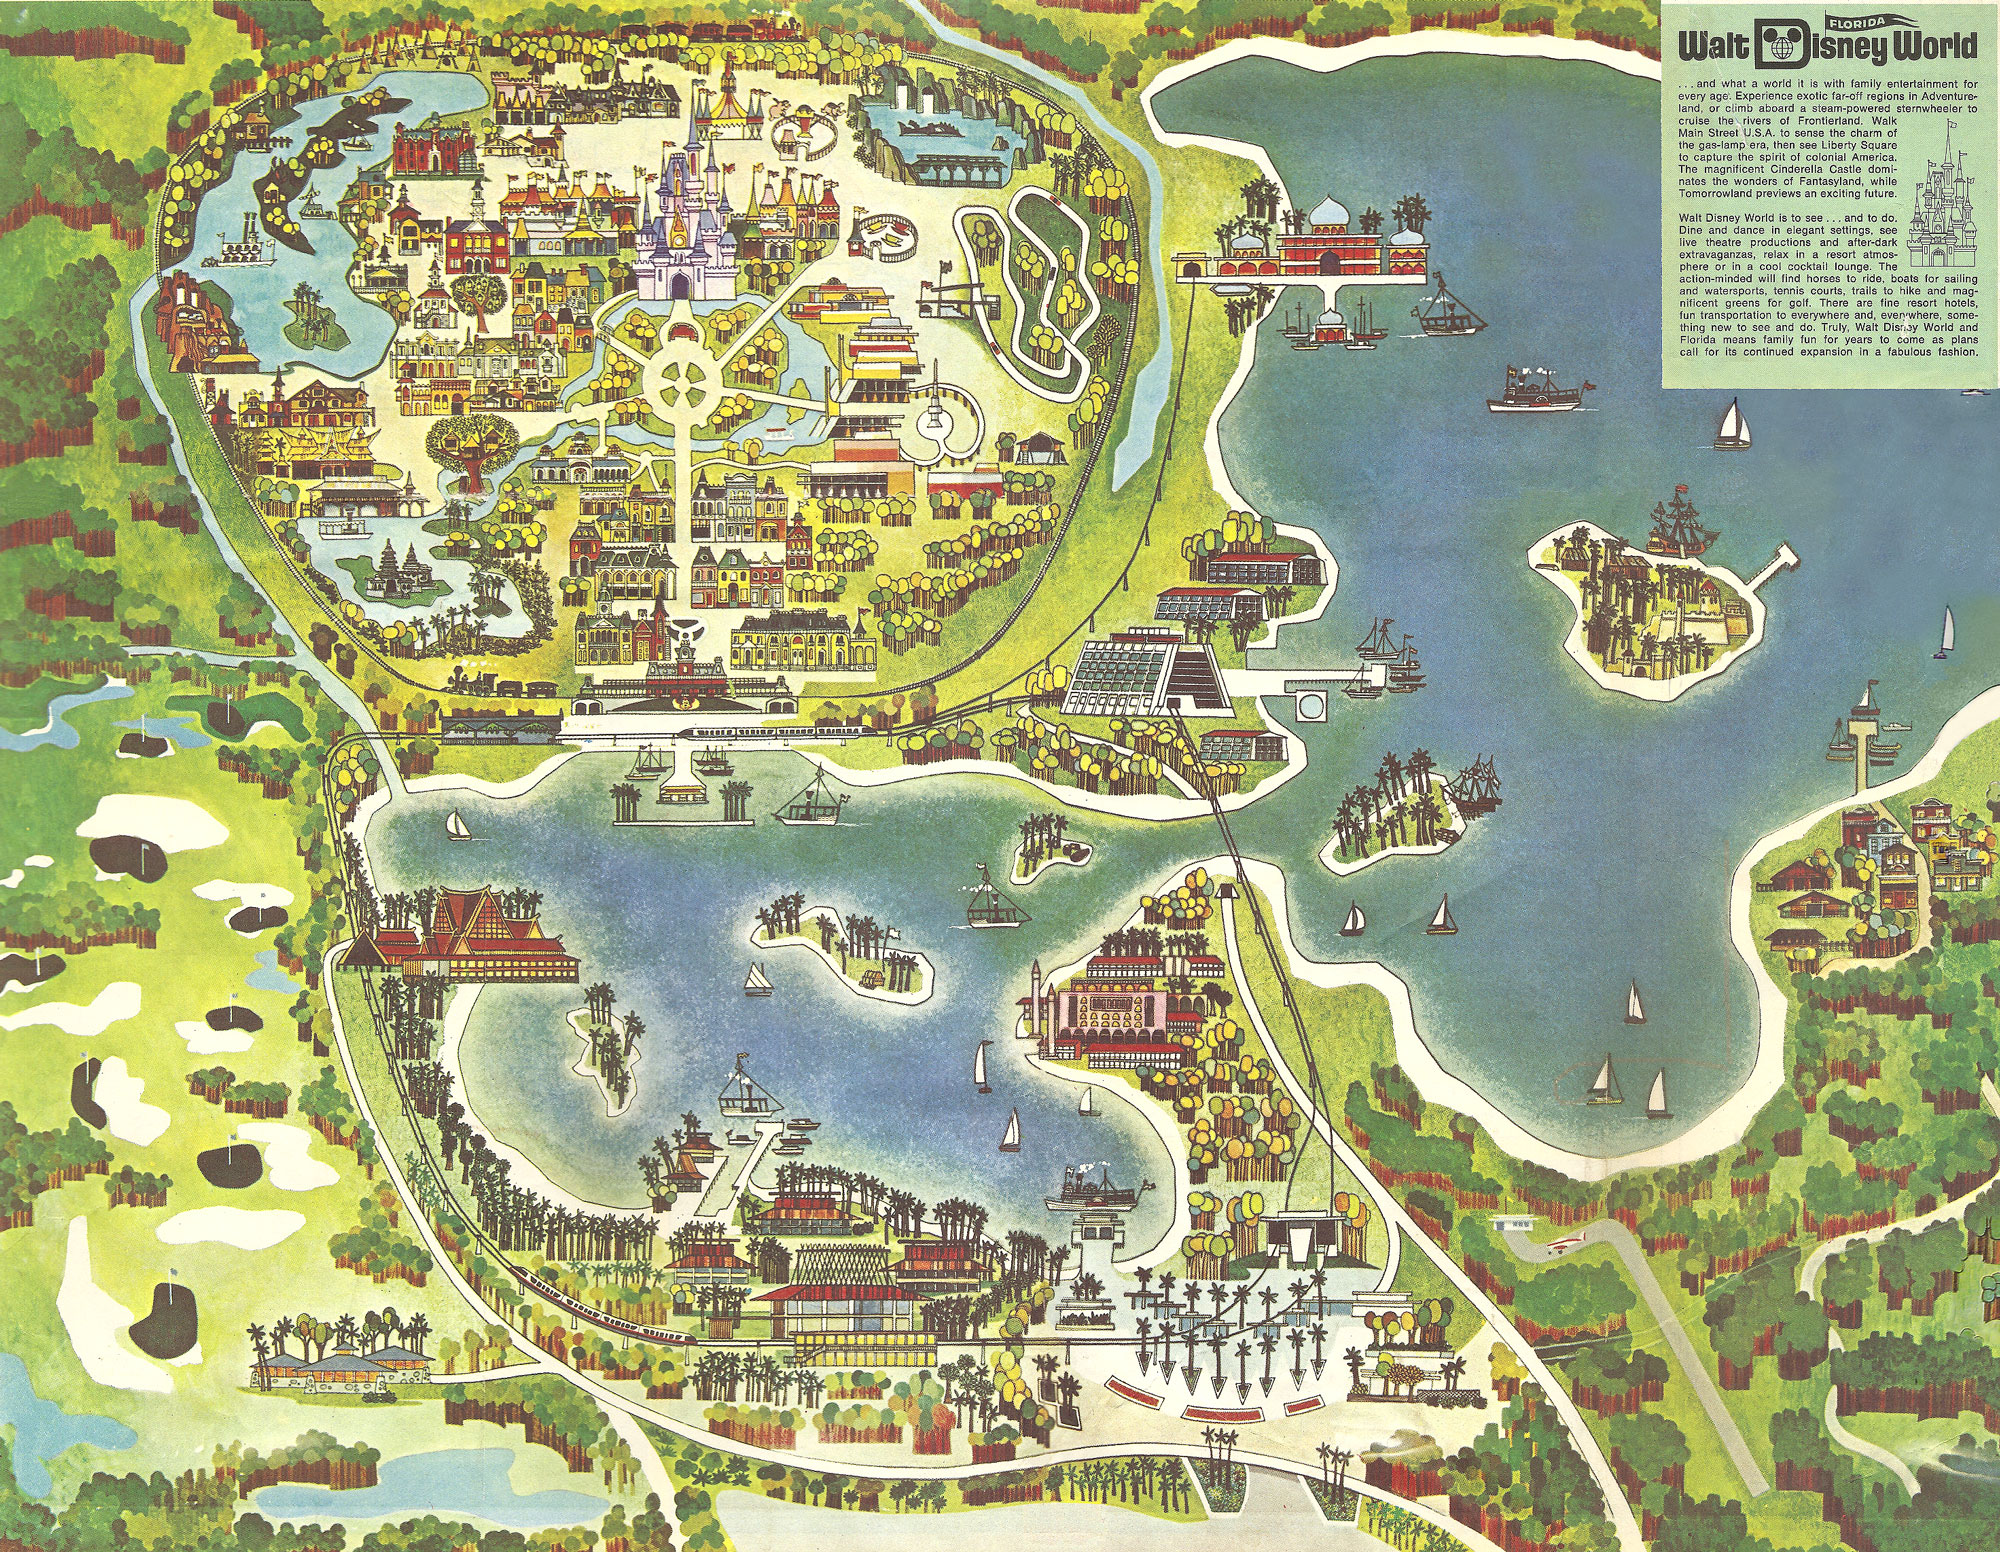 Walt+Disney+World+Map.jpg